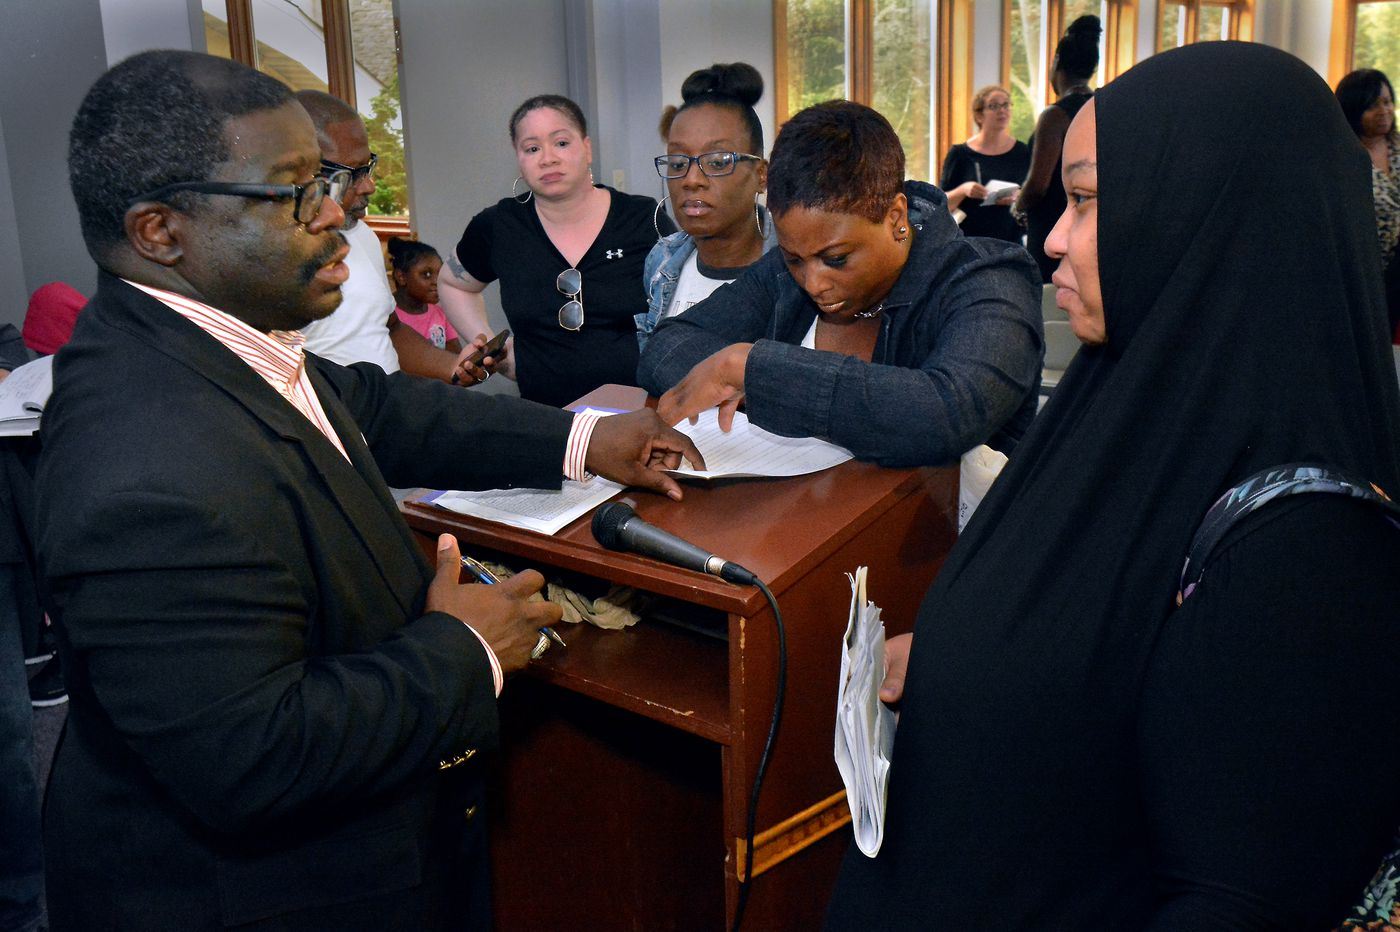 After battle with Philly School District, Eastern charter won't open for new school year